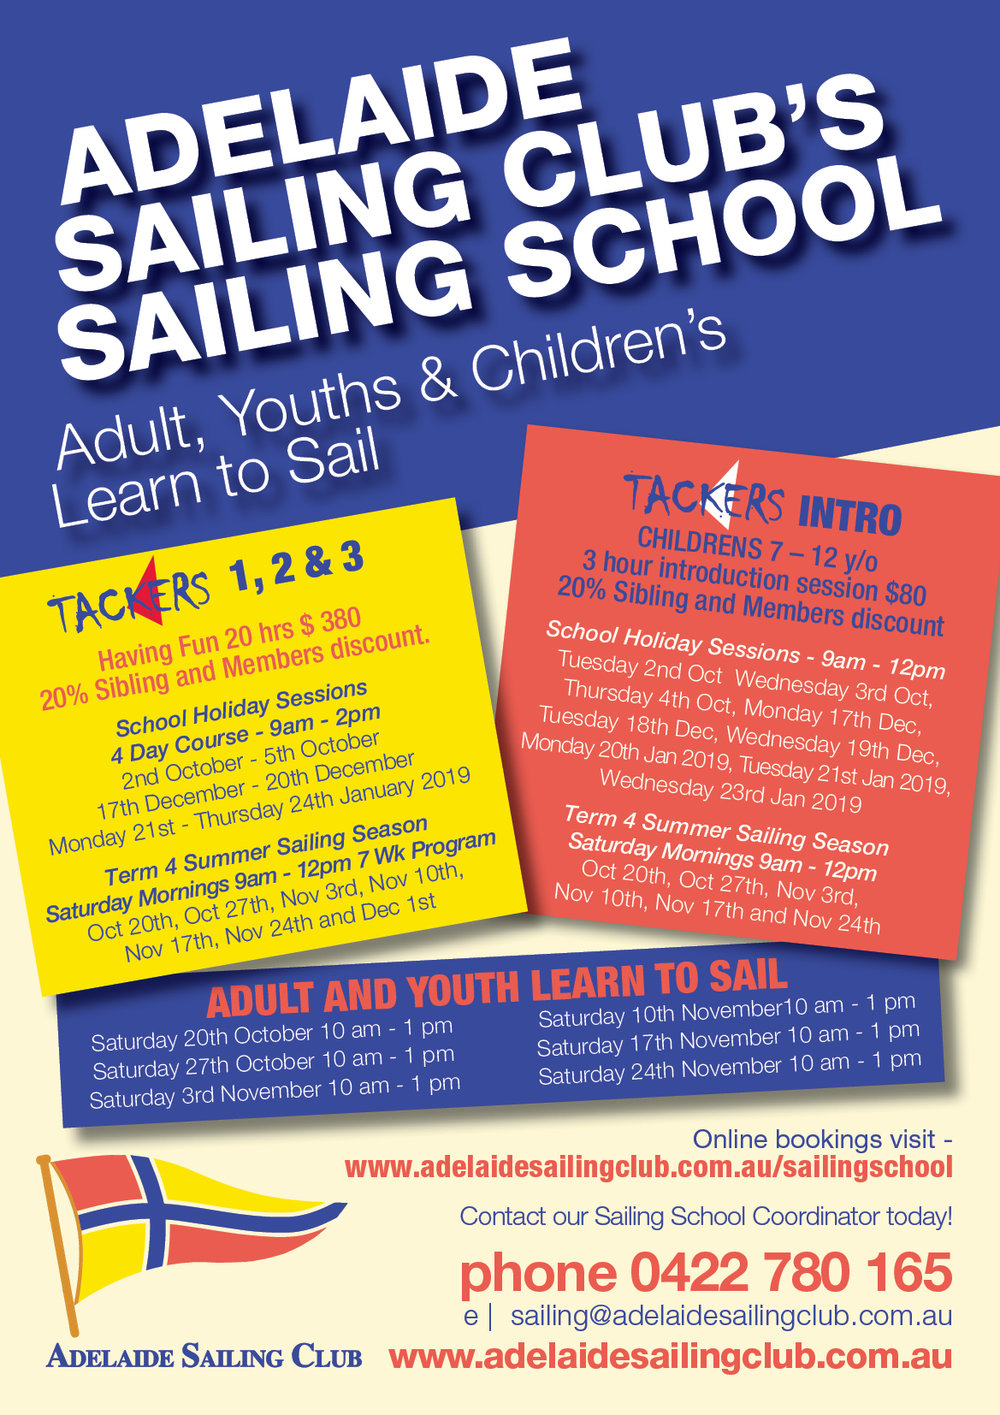 ADELAIDE SAILING CLUB, A5 School course dates Flyers 2018.jpg